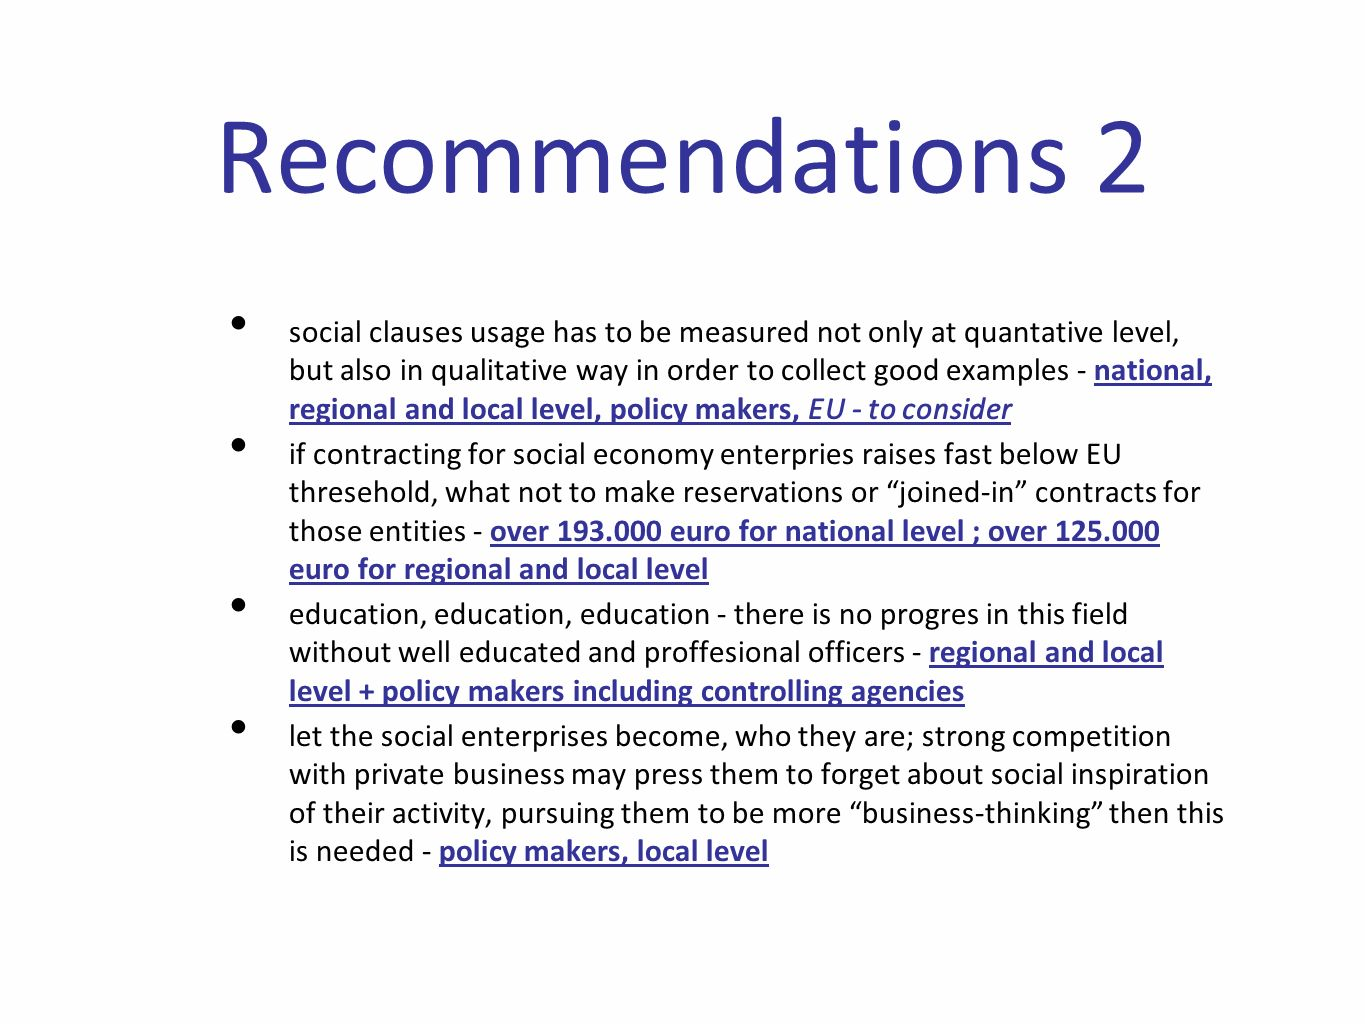 Recommendations 2 social clauses usage has to be measured not only at quantative level, but also in qualitative way in order to collect good examples - national, regional and local level, policy makers, EU - to consider if contracting for social economy enterpries raises fast below EU thresehold, what not to make reservations or joined-in contracts for those entities - over euro for national level ; over euro for regional and local level education, education, education - there is no progres in this field without well educated and proffesional officers - regional and local level + policy makers including controlling agencies let the social enterprises become, who they are; strong competition with private business may press them to forget about social inspiration of their activity, pursuing them to be more business-thinking then this is needed - policy makers, local level